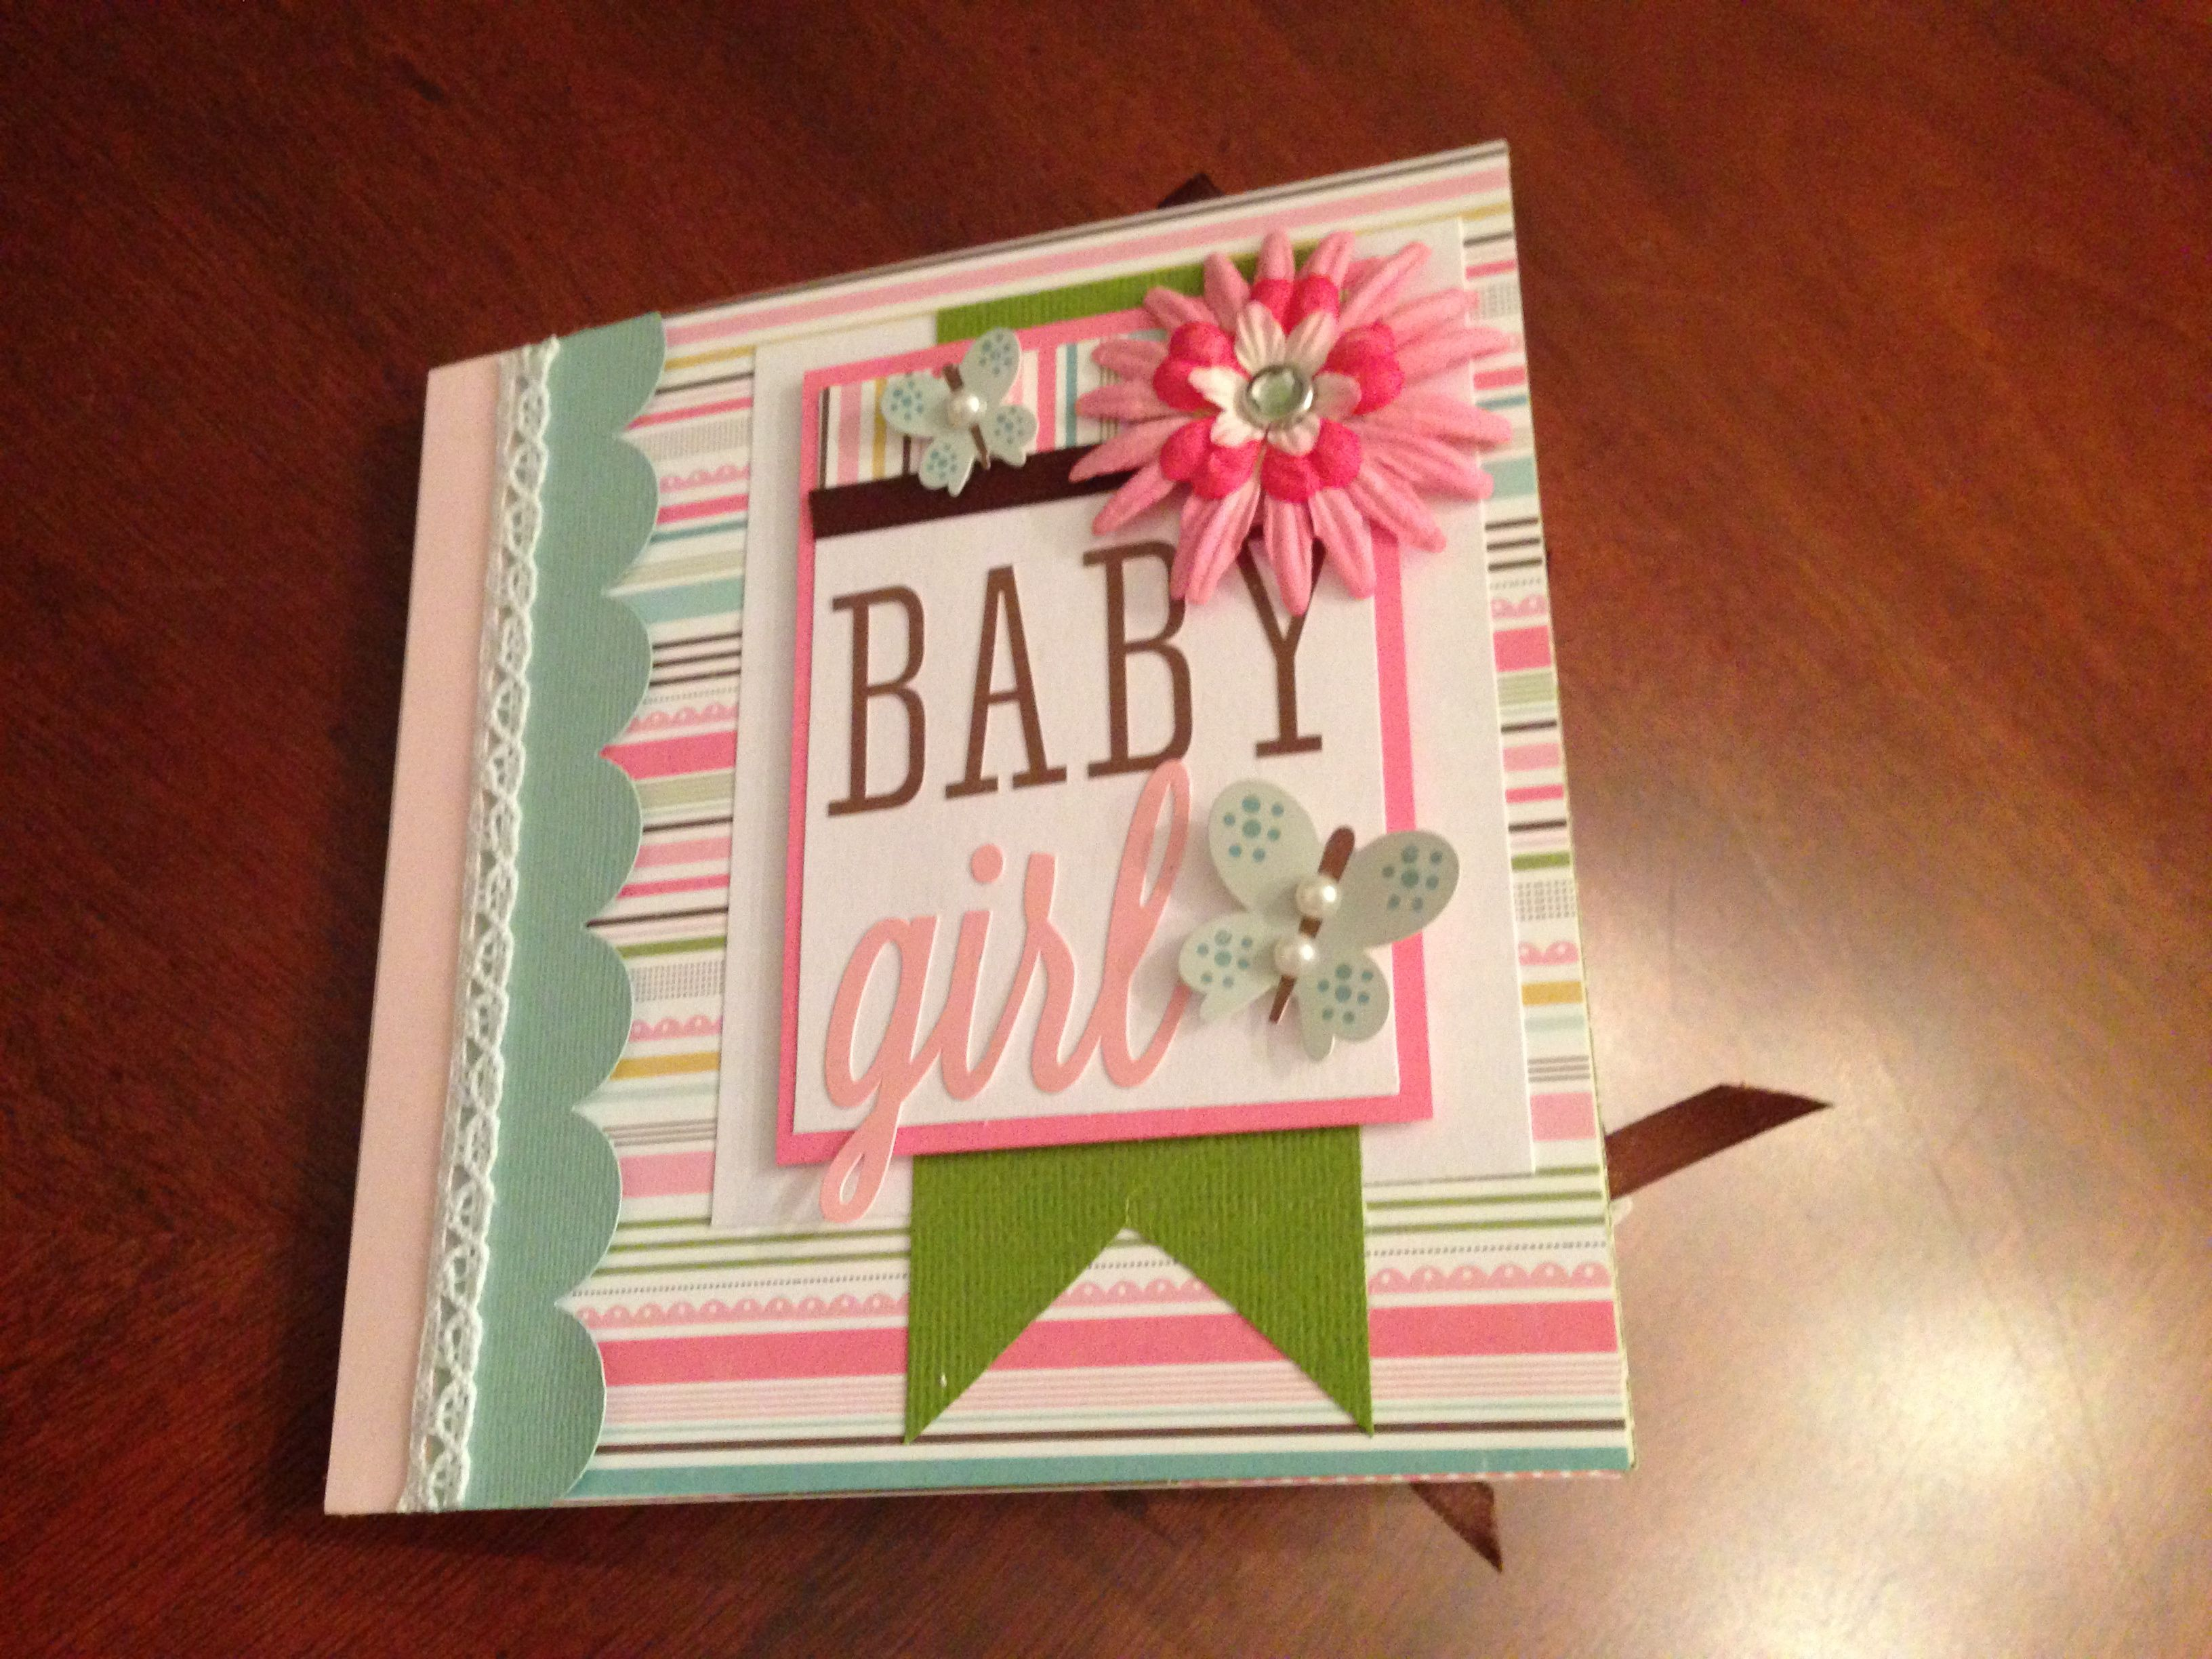 Baby Book Cover Ideas : Baby girl mini album cover page albums pinterest